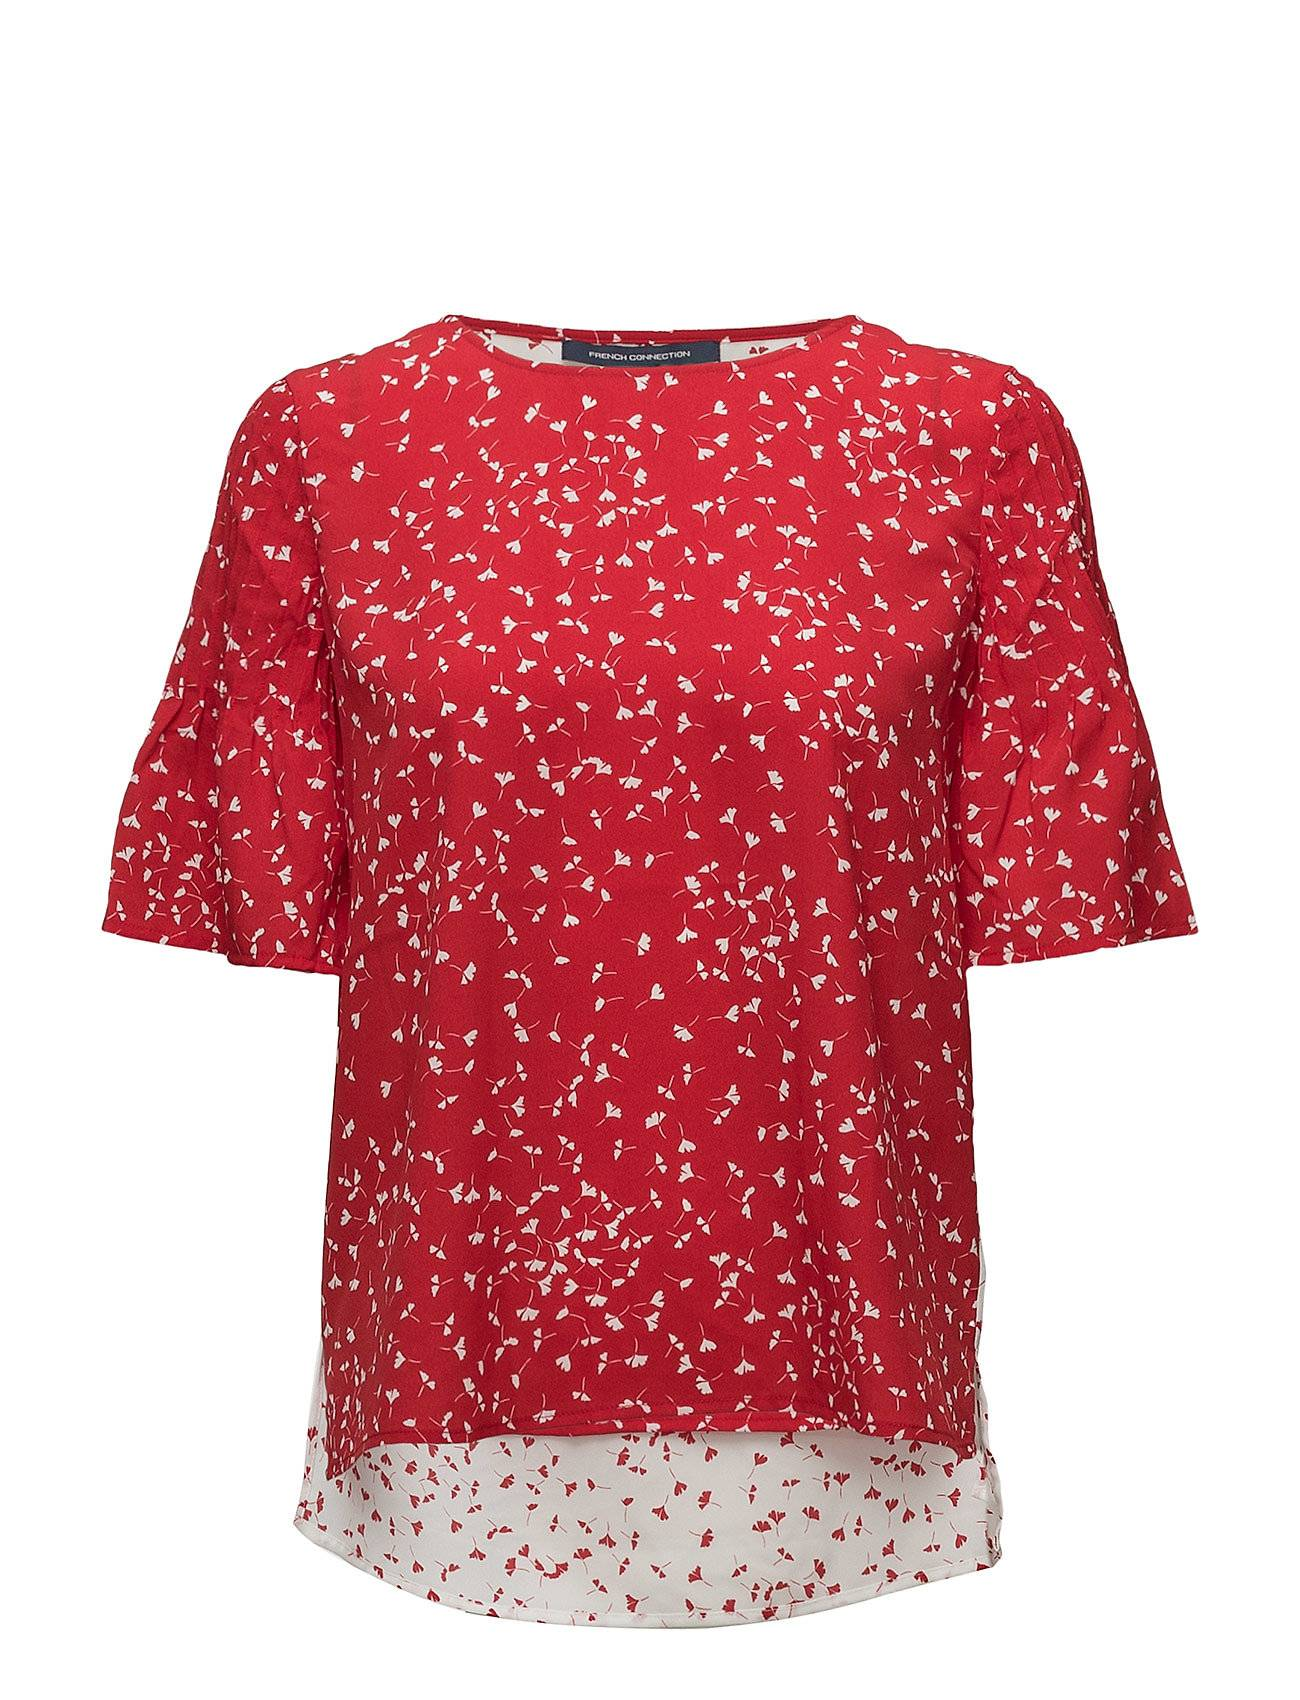 French Connection Komo Crepe Light Roundneck Top